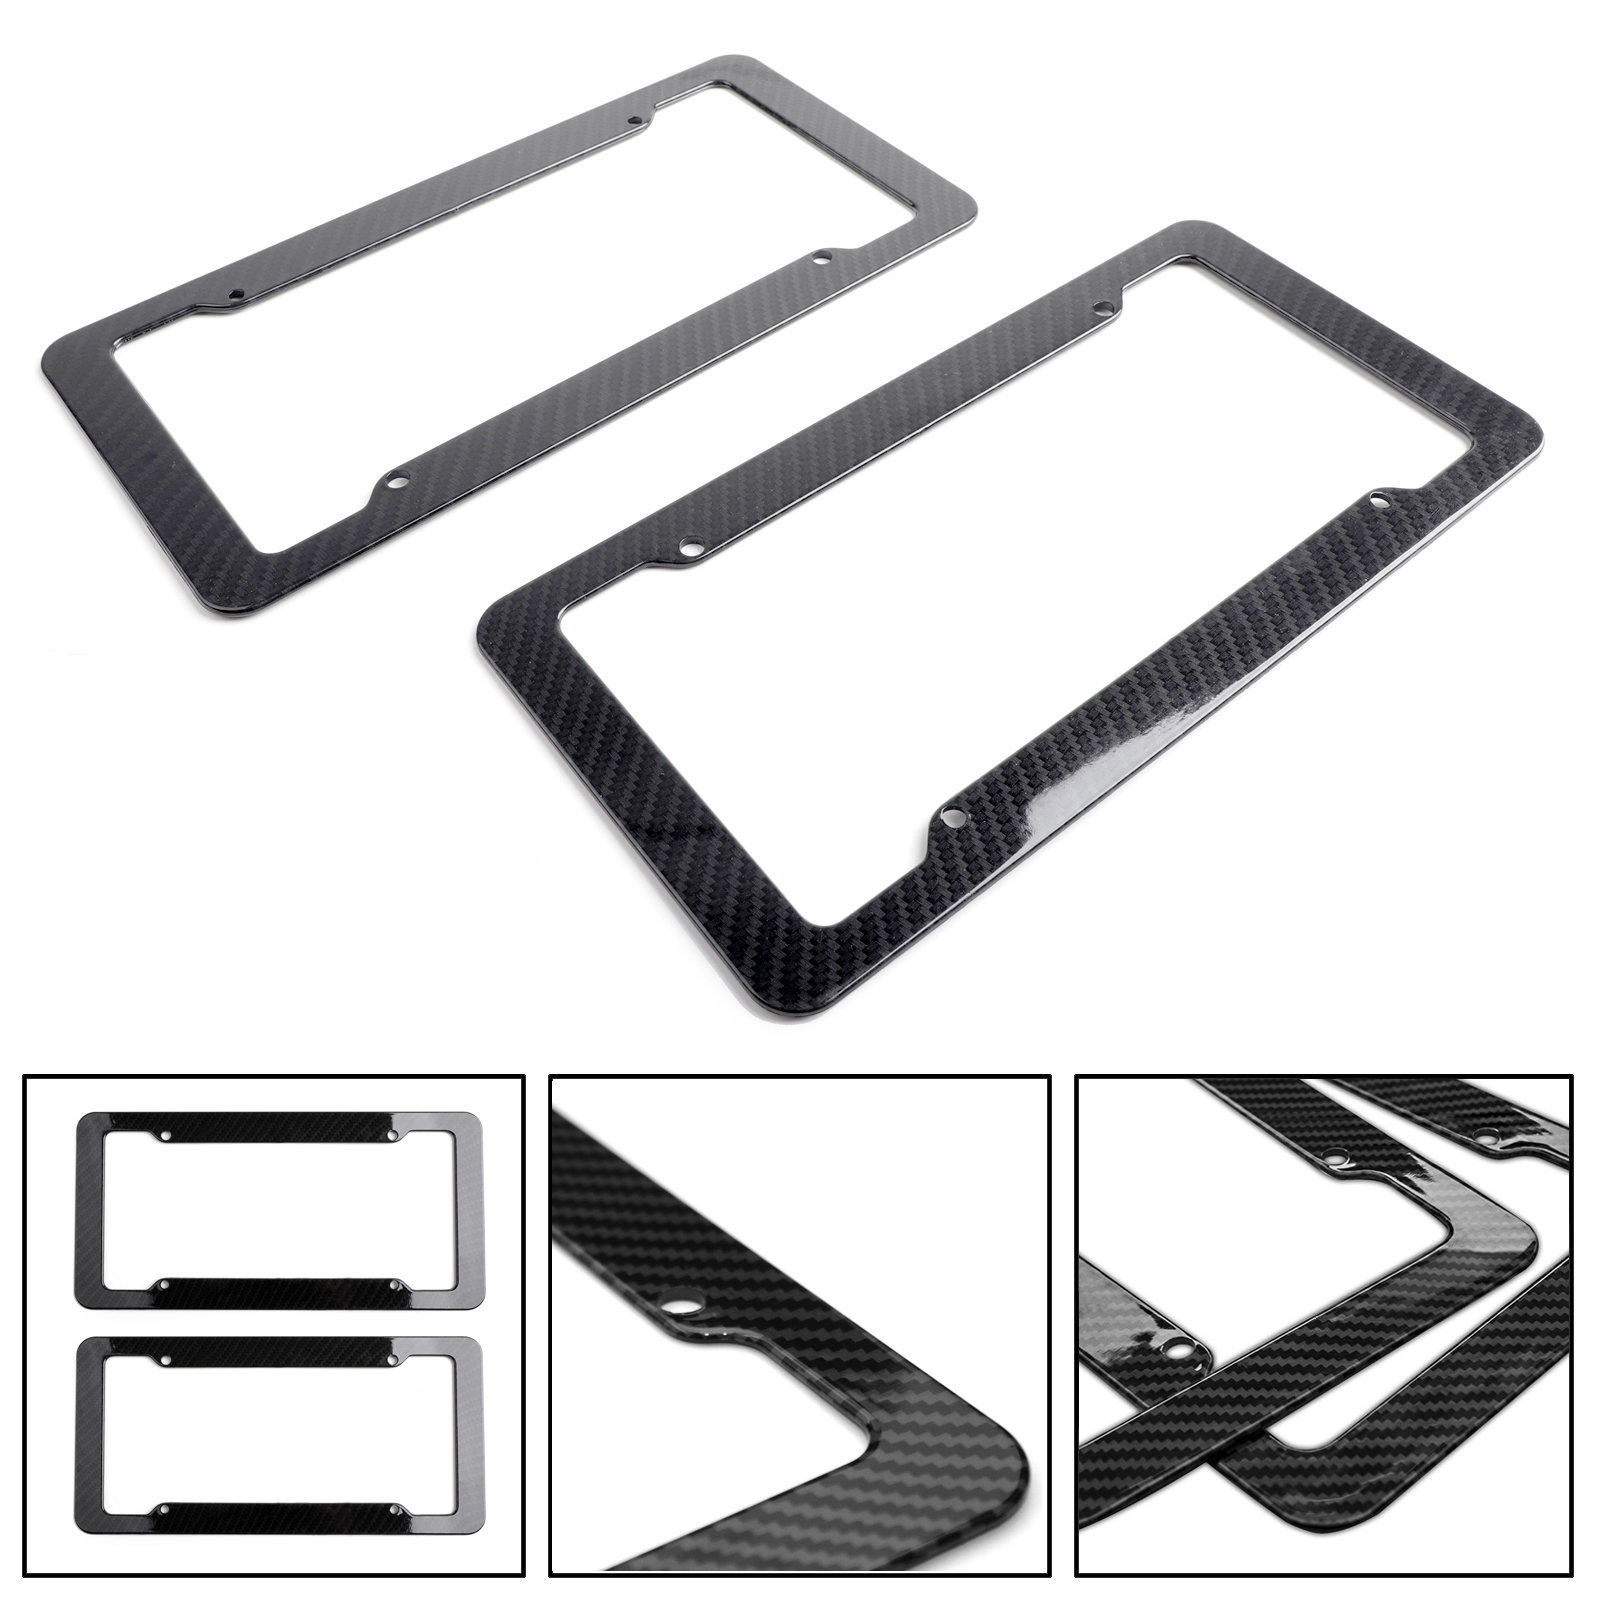 1pcs Carbon Fiber License Plate Holder Cover Frame Front /& Rear with 4 Holes